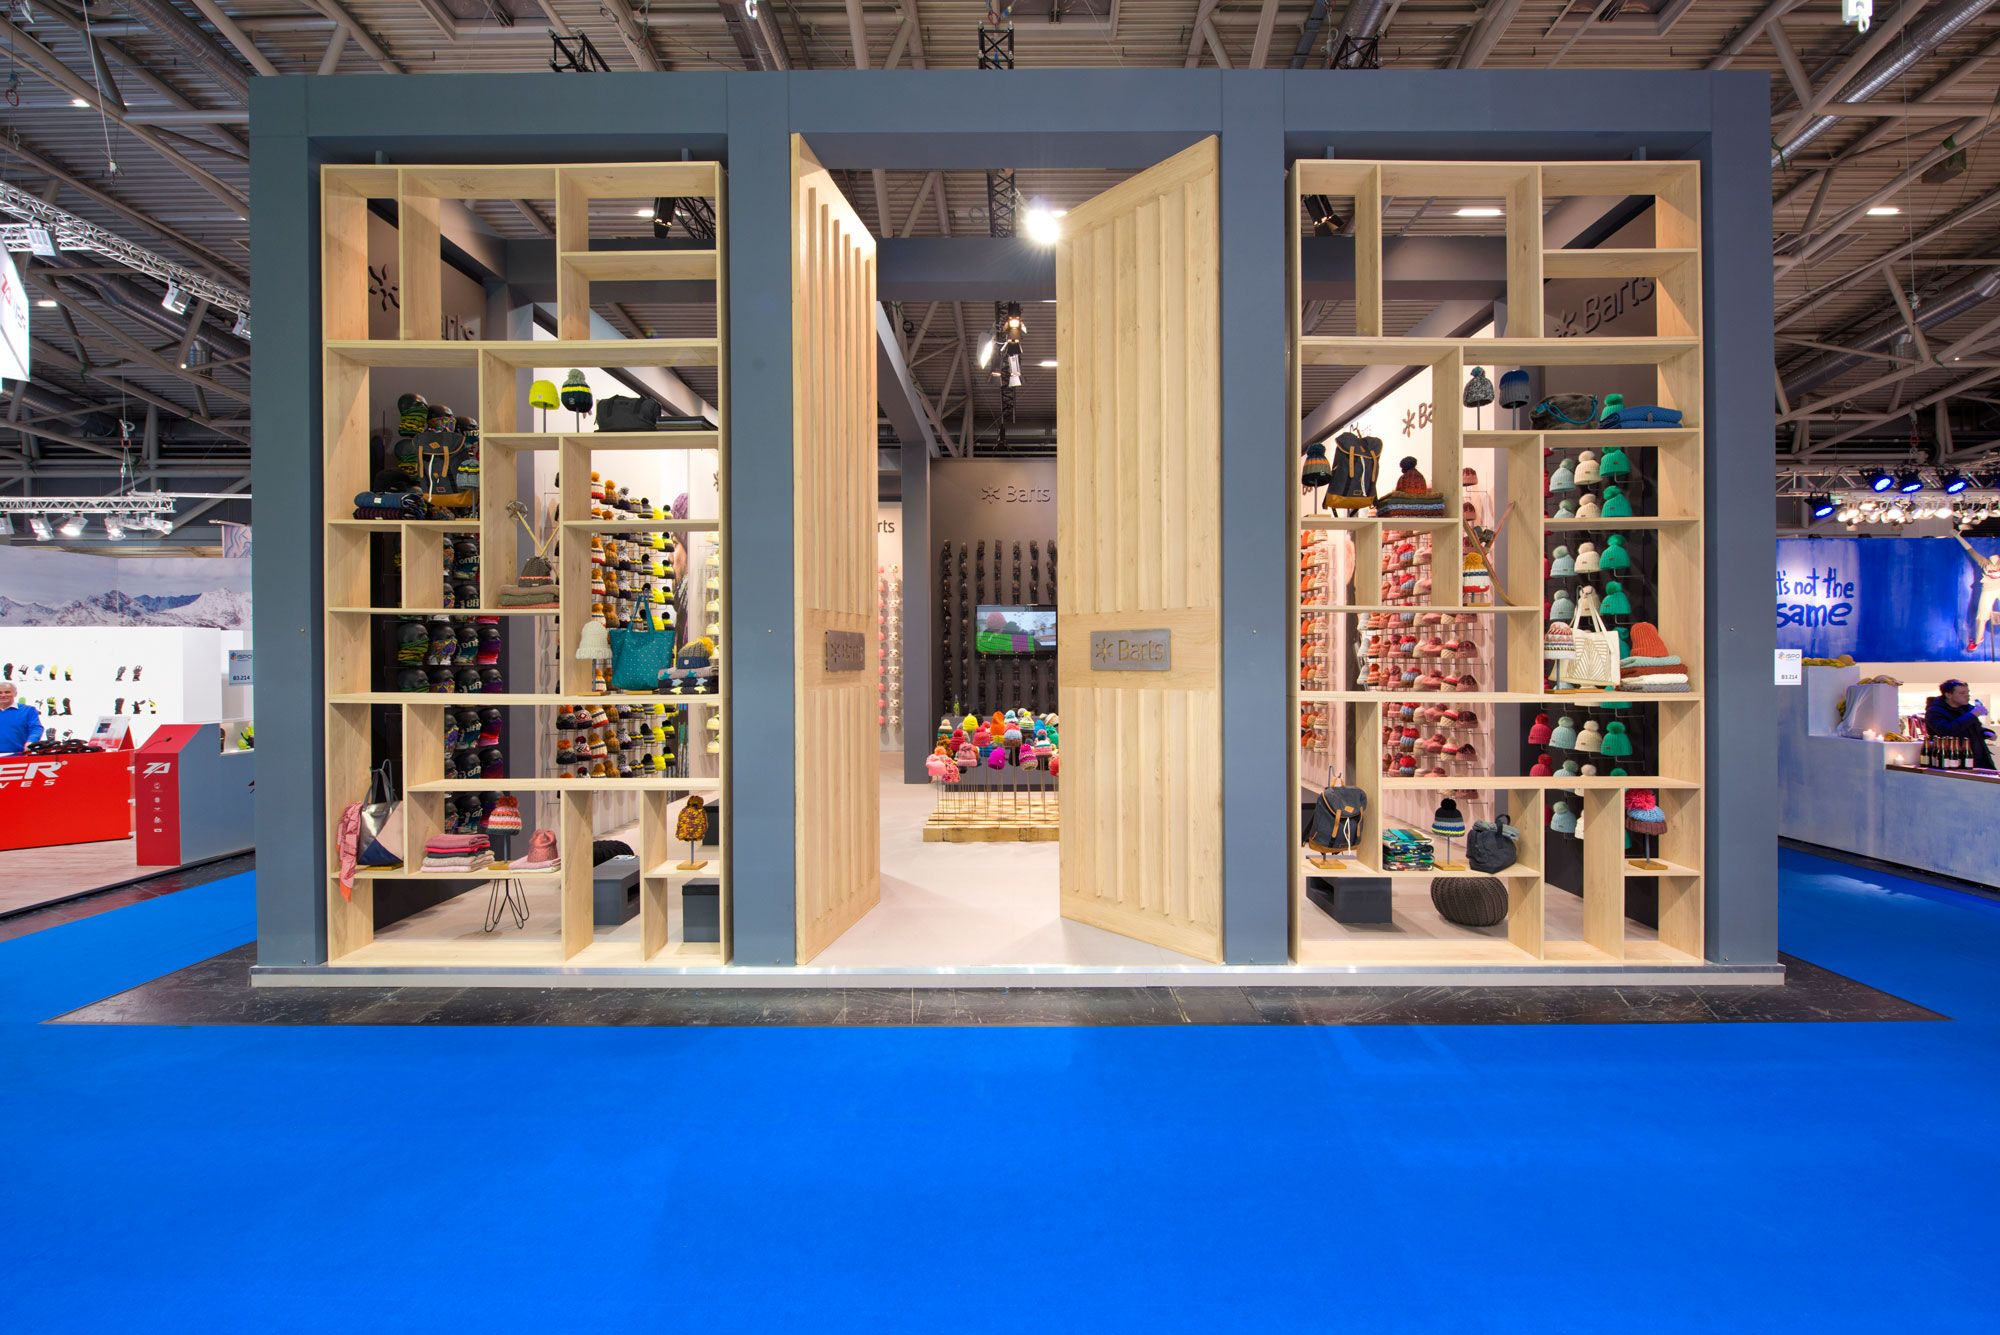 Exhibition Stand Builders In Munich : Stand from the inside stand building at ispo munich germany